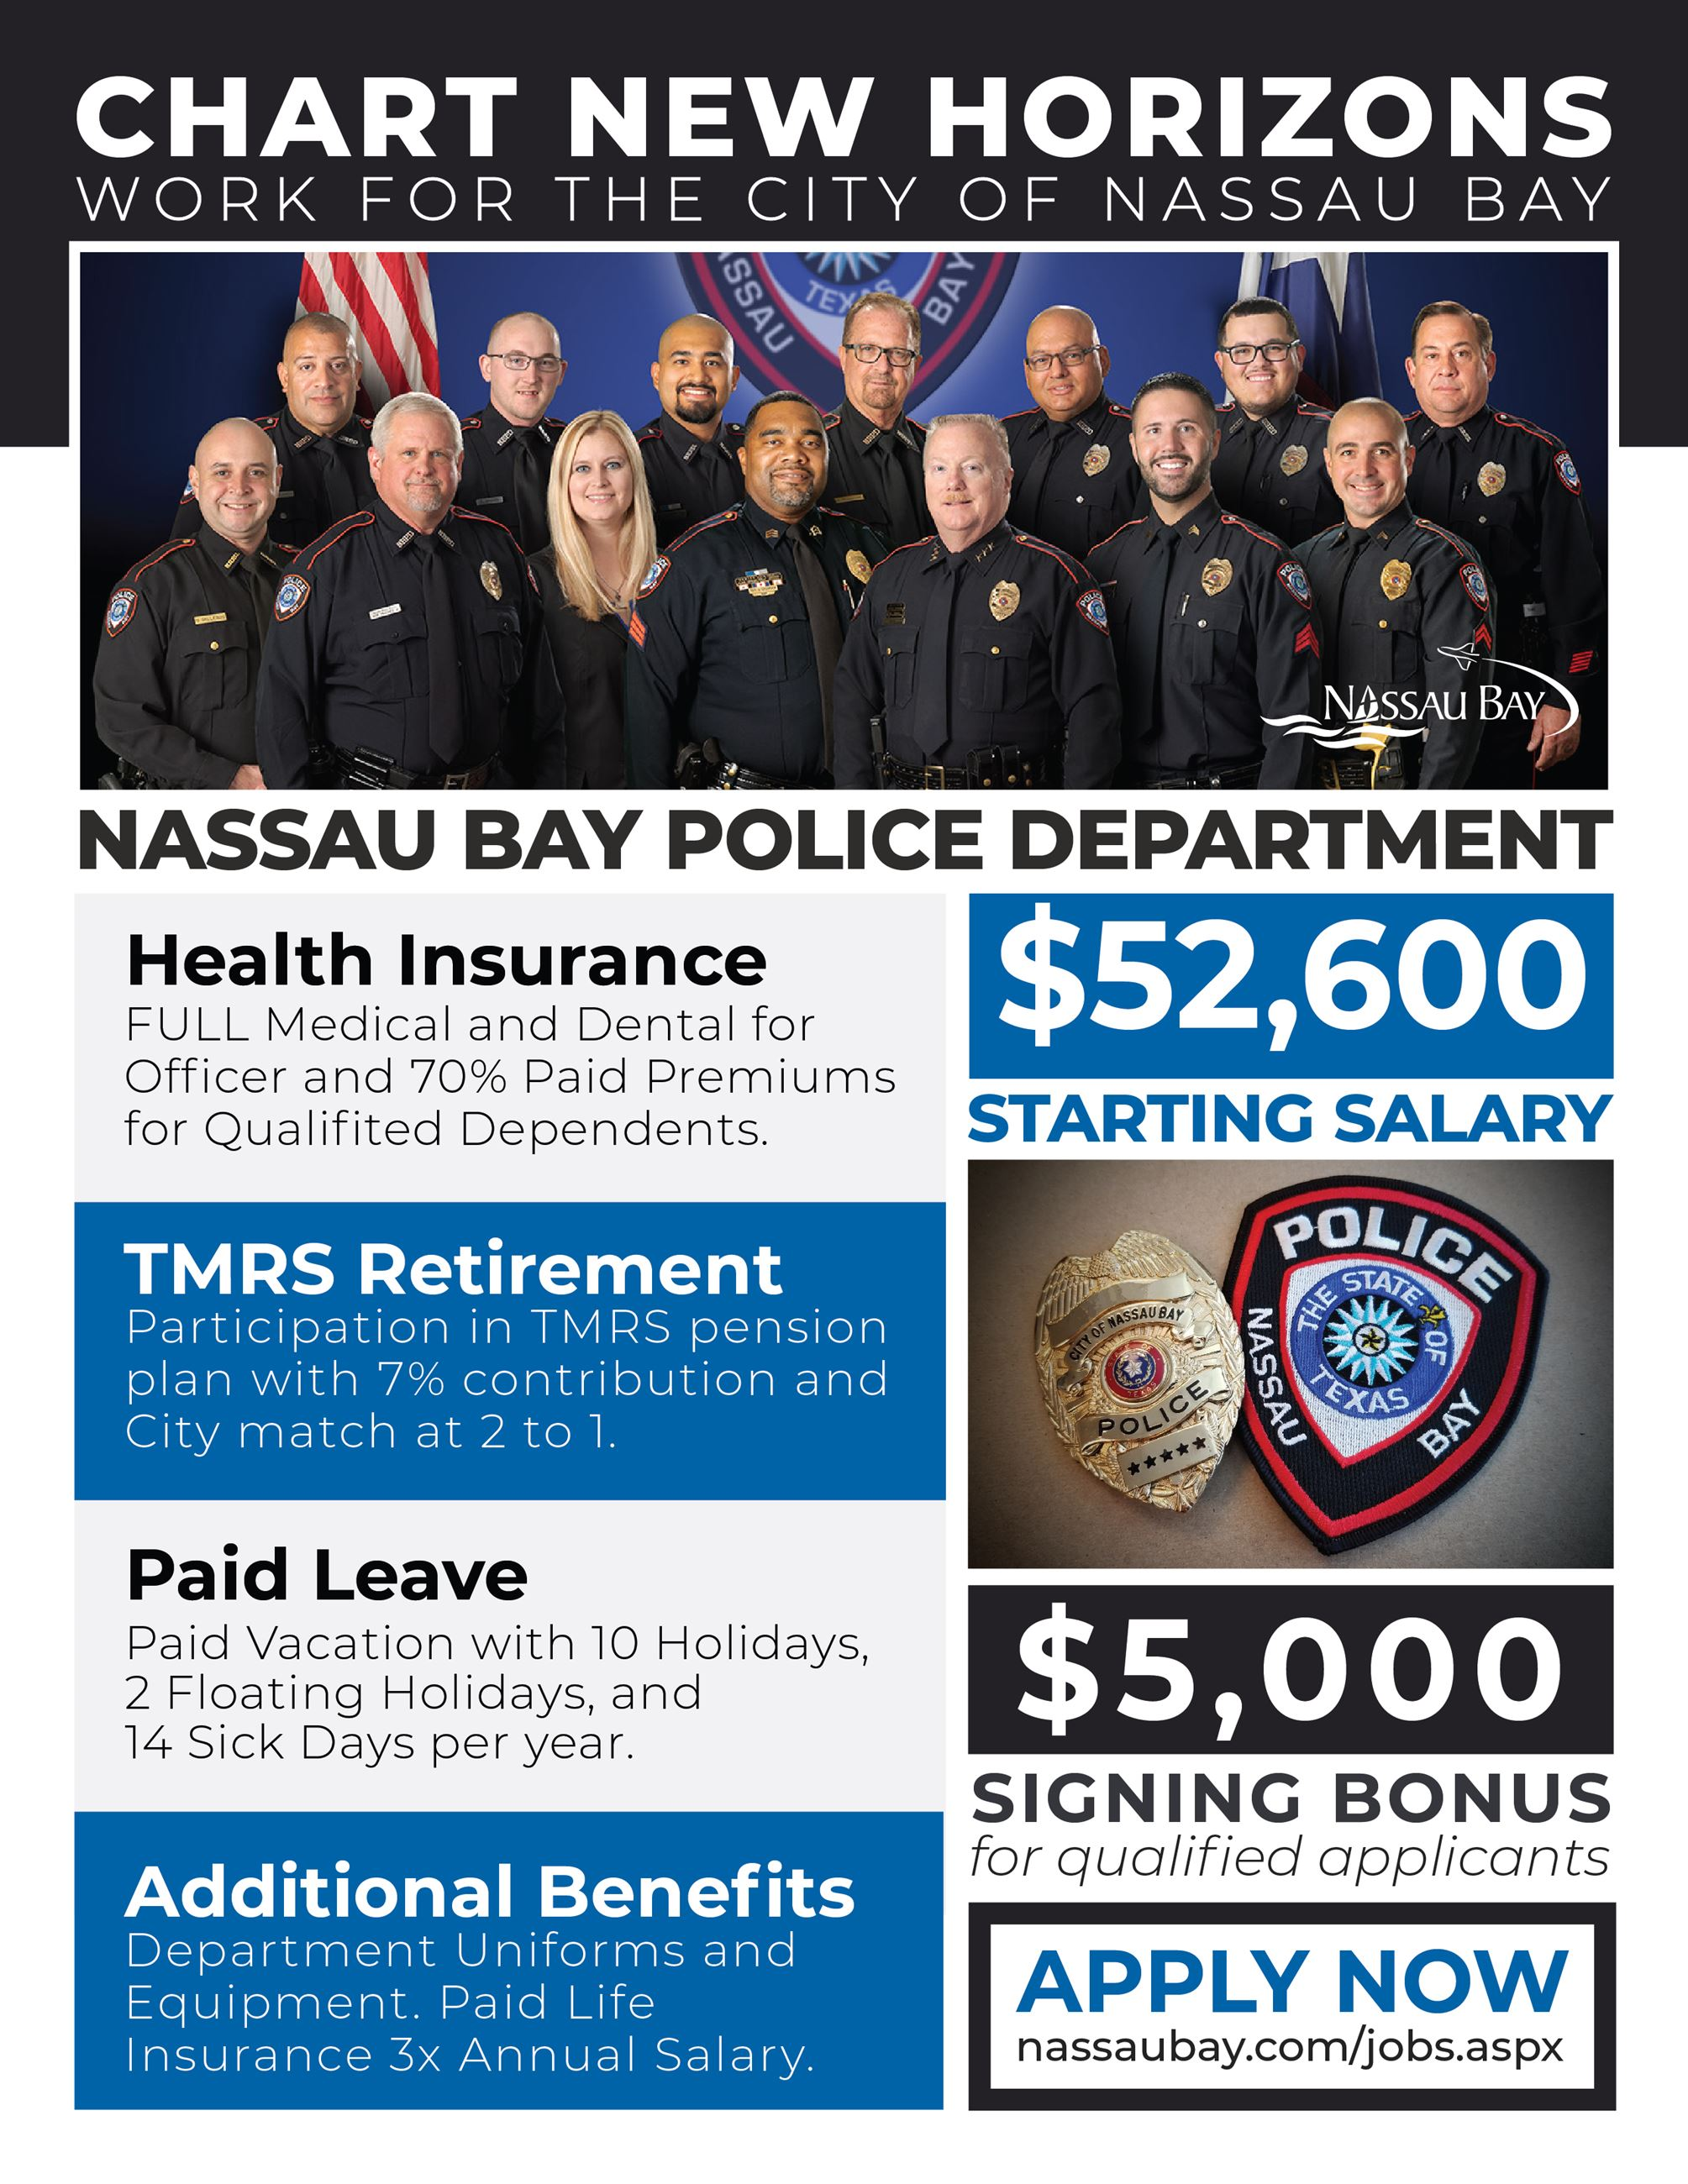 NBPD Recruitment Flyer Opens in new window